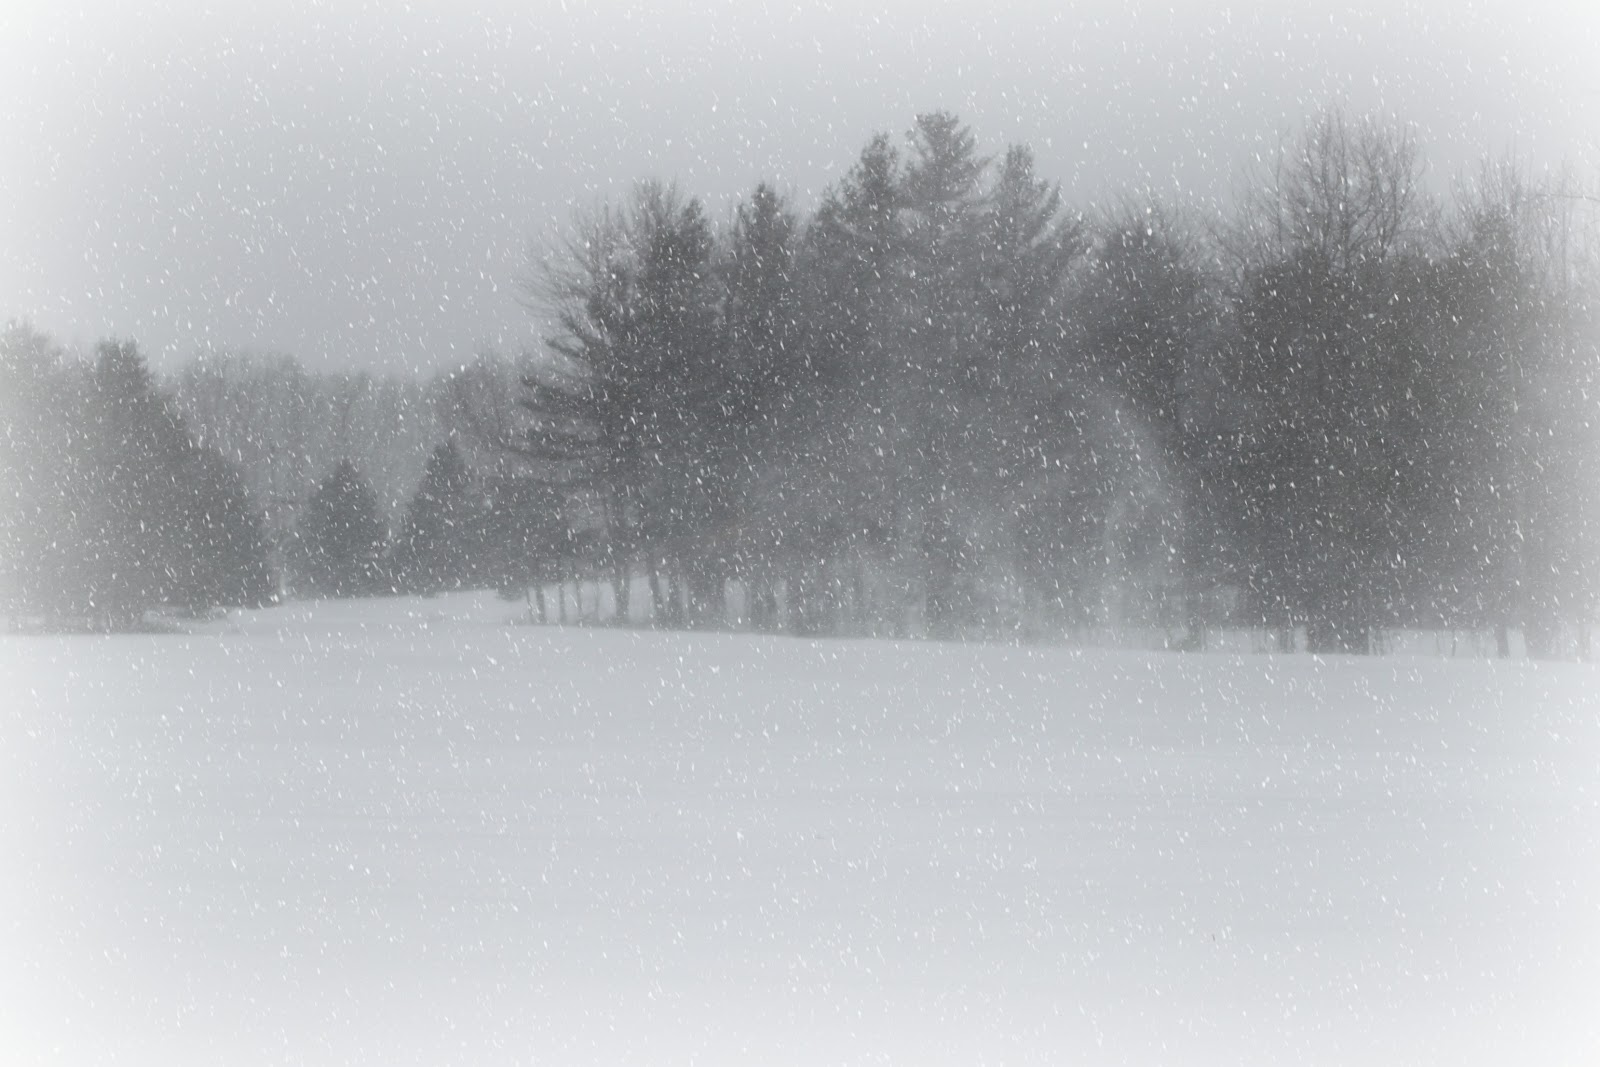 Dog Trot Farm 35 5 Inches Of Snow